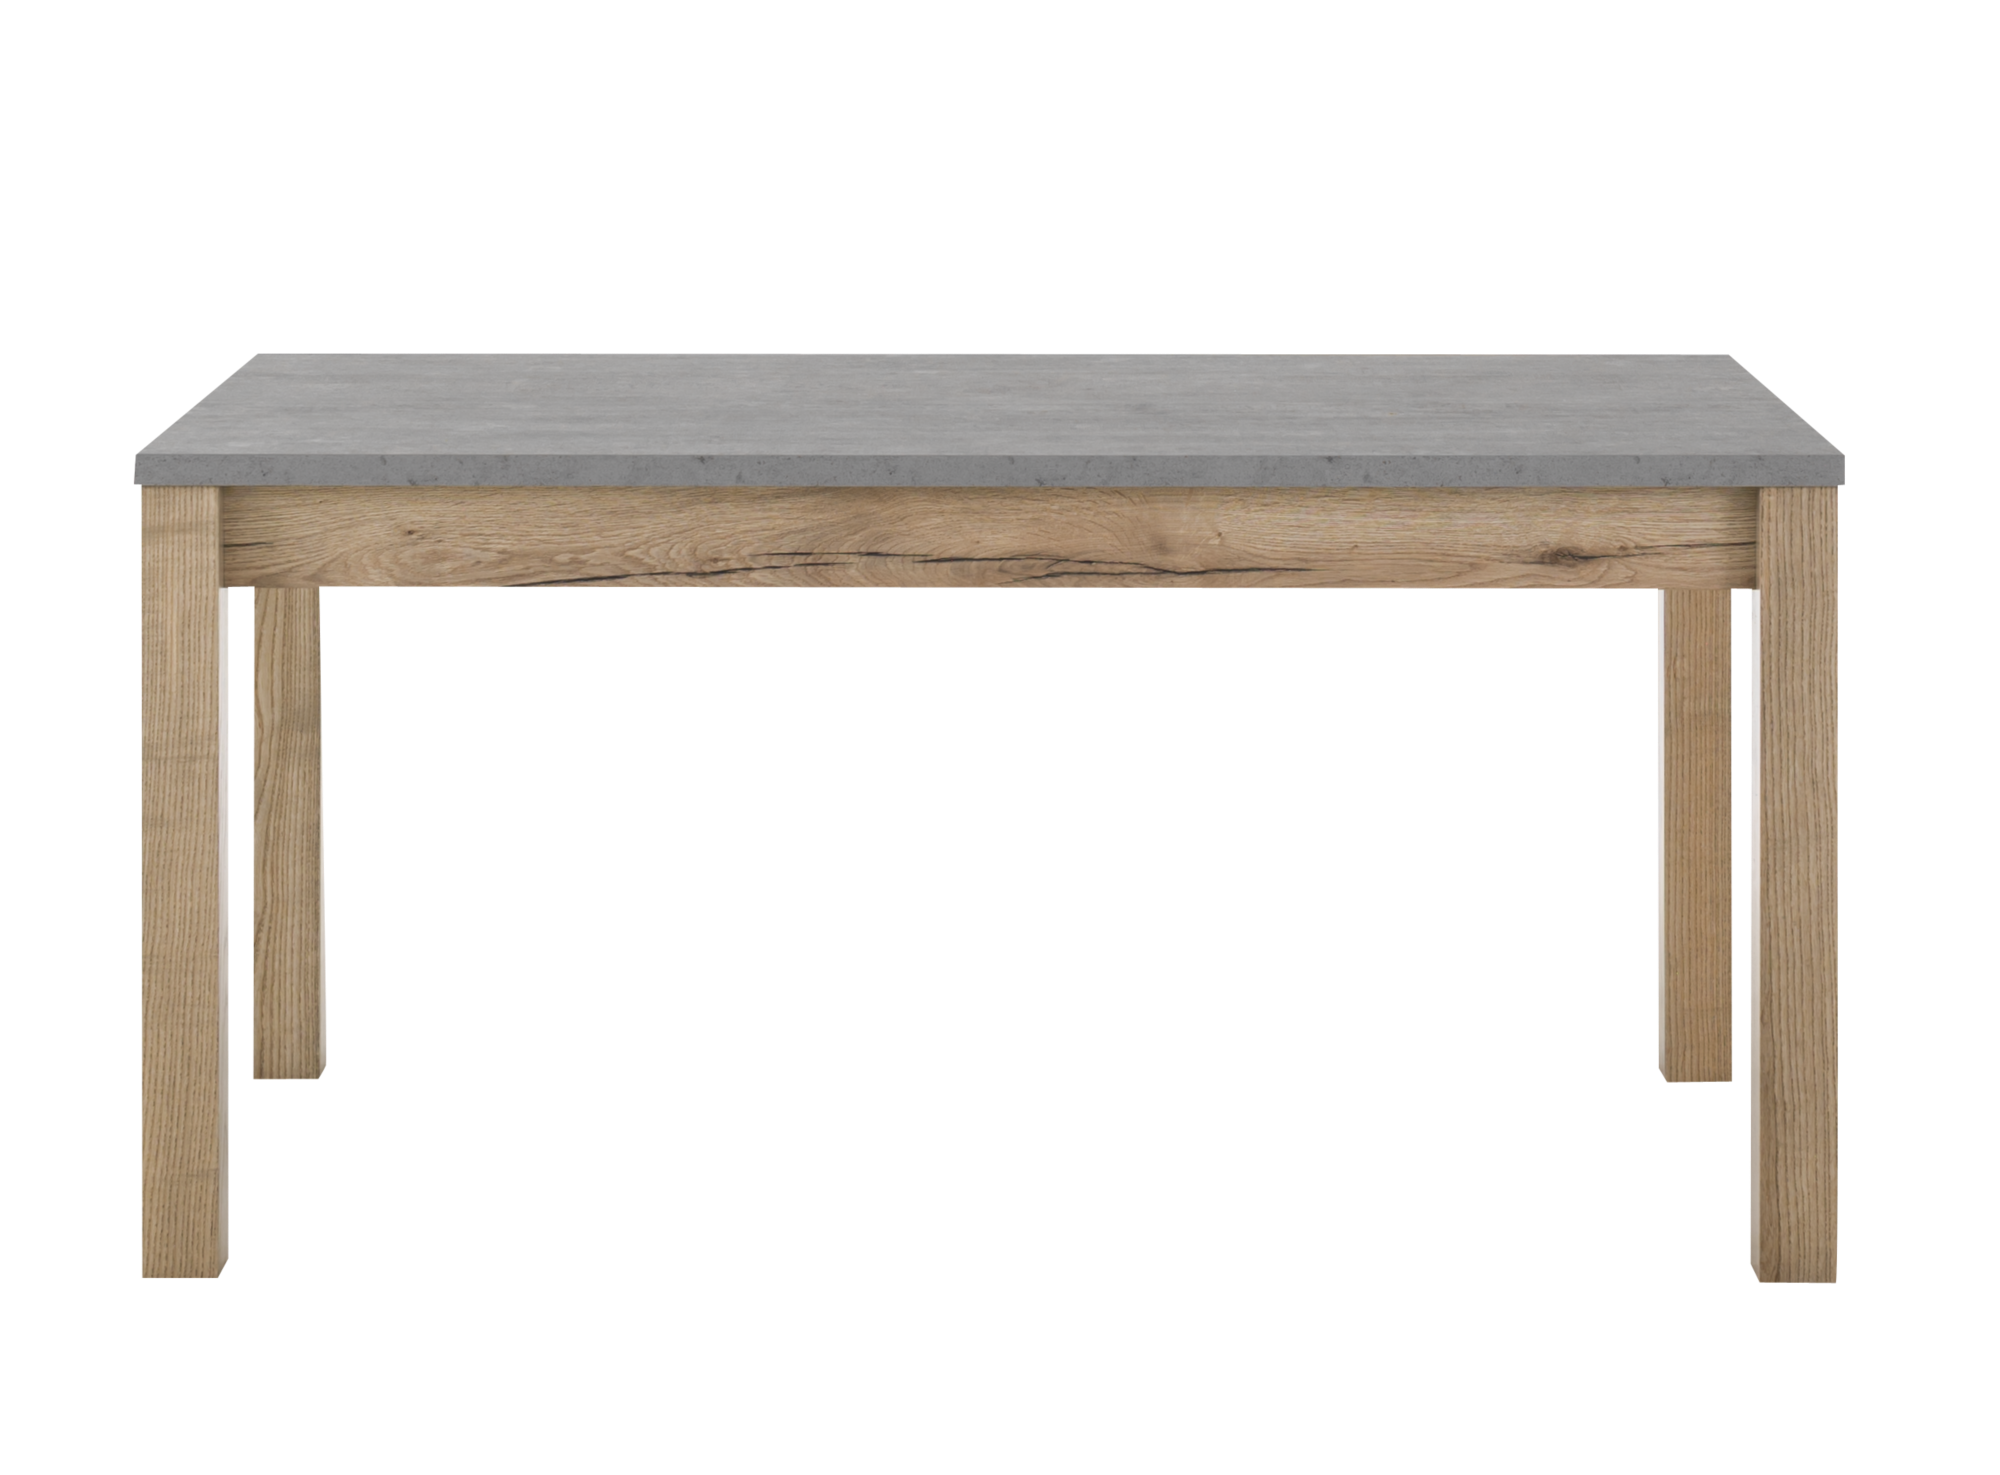 Table rectangulaire avec allonge gris bois fly Table rectangulaire bois avec allonges